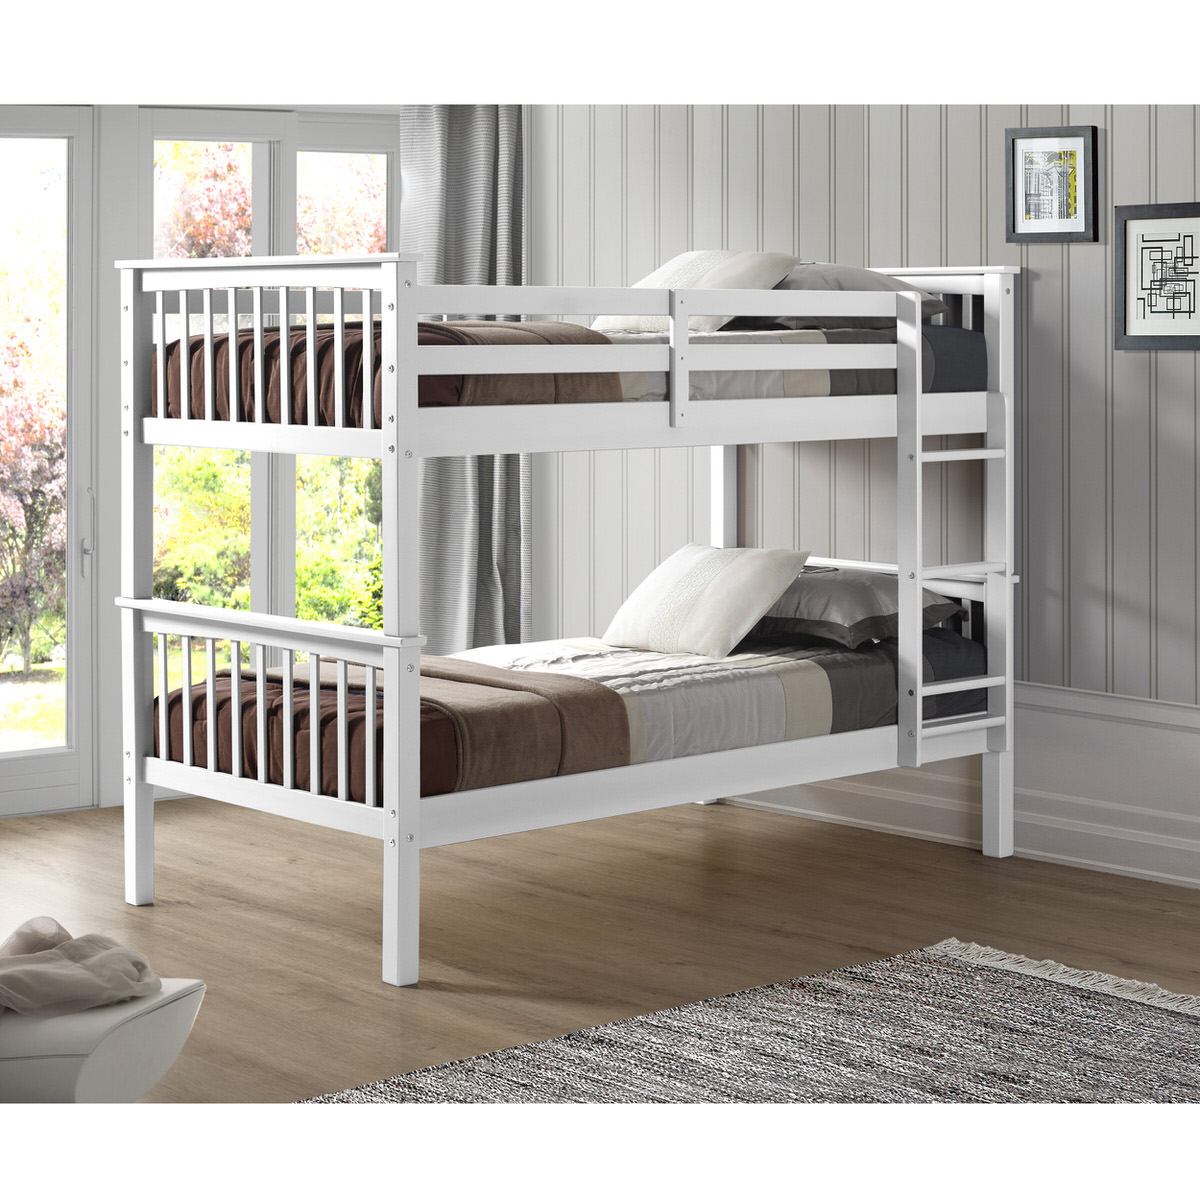 Mission Design Twin over Twin Solid Wood Bunk Bed - White by Walker Edison